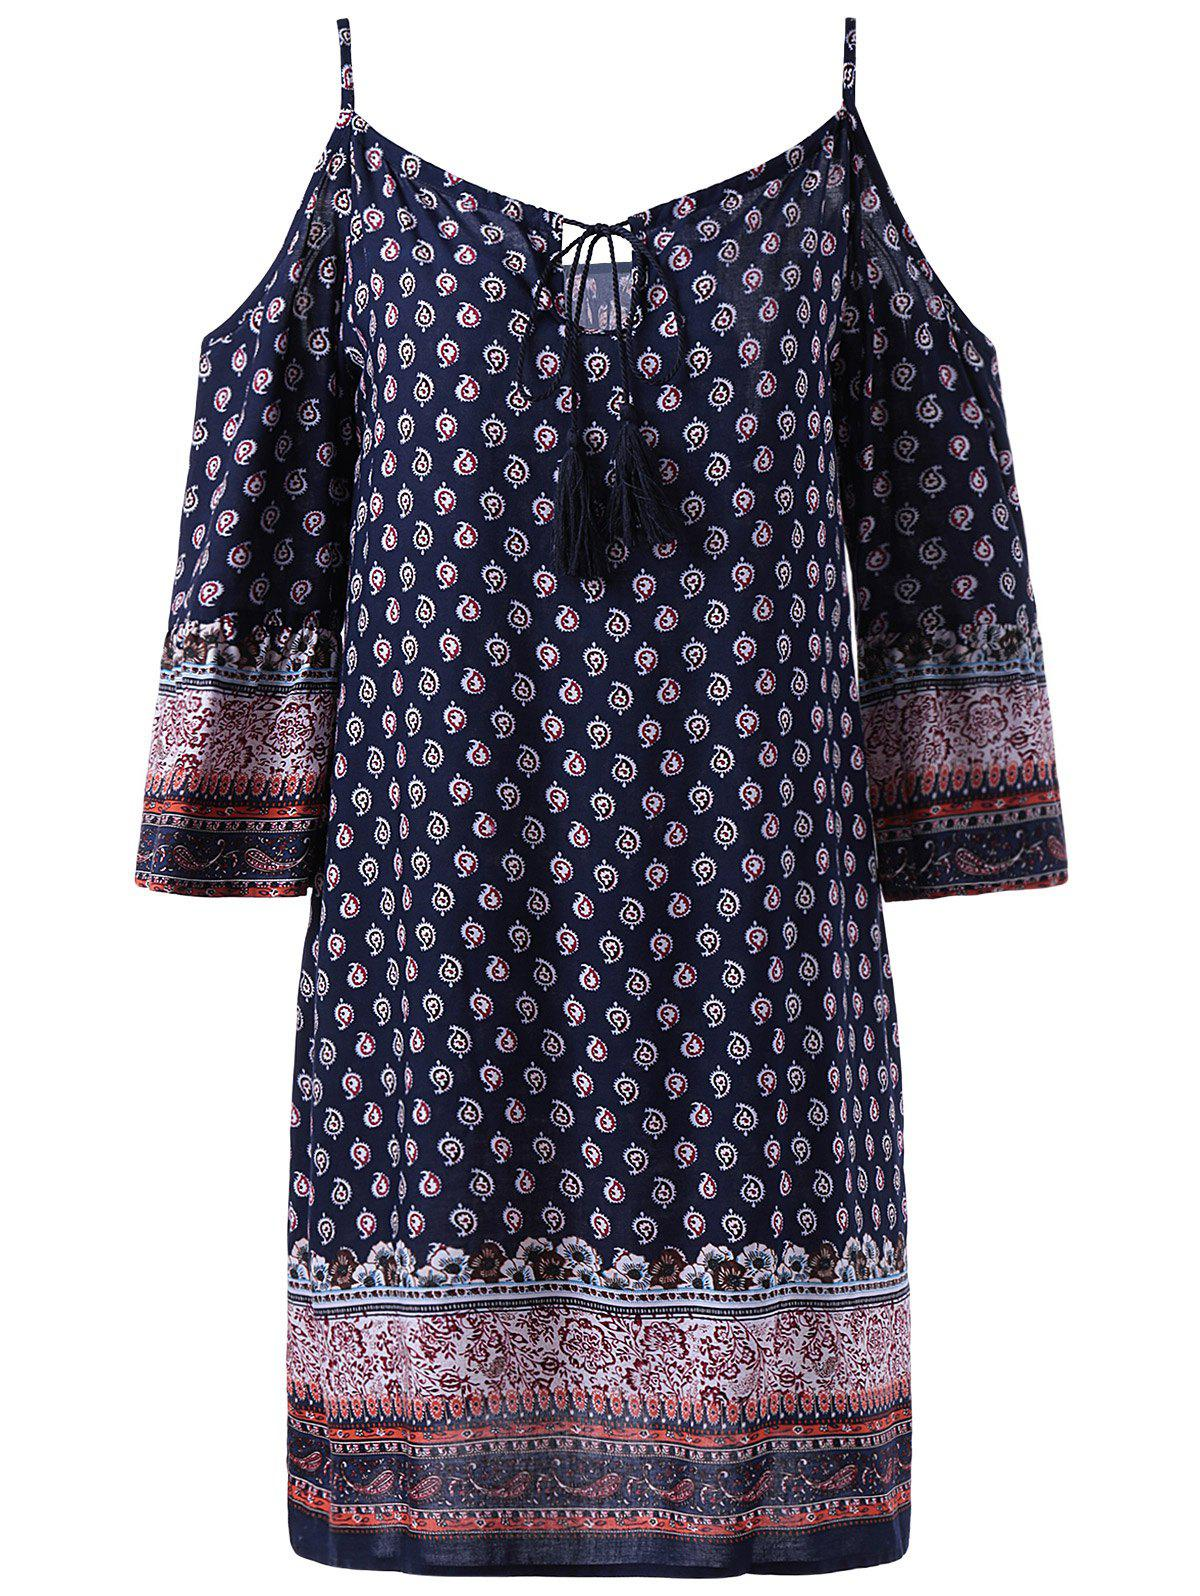 Fashionable Women's Spaghetti Strap 3/4 Sleeve Straight Print Dress